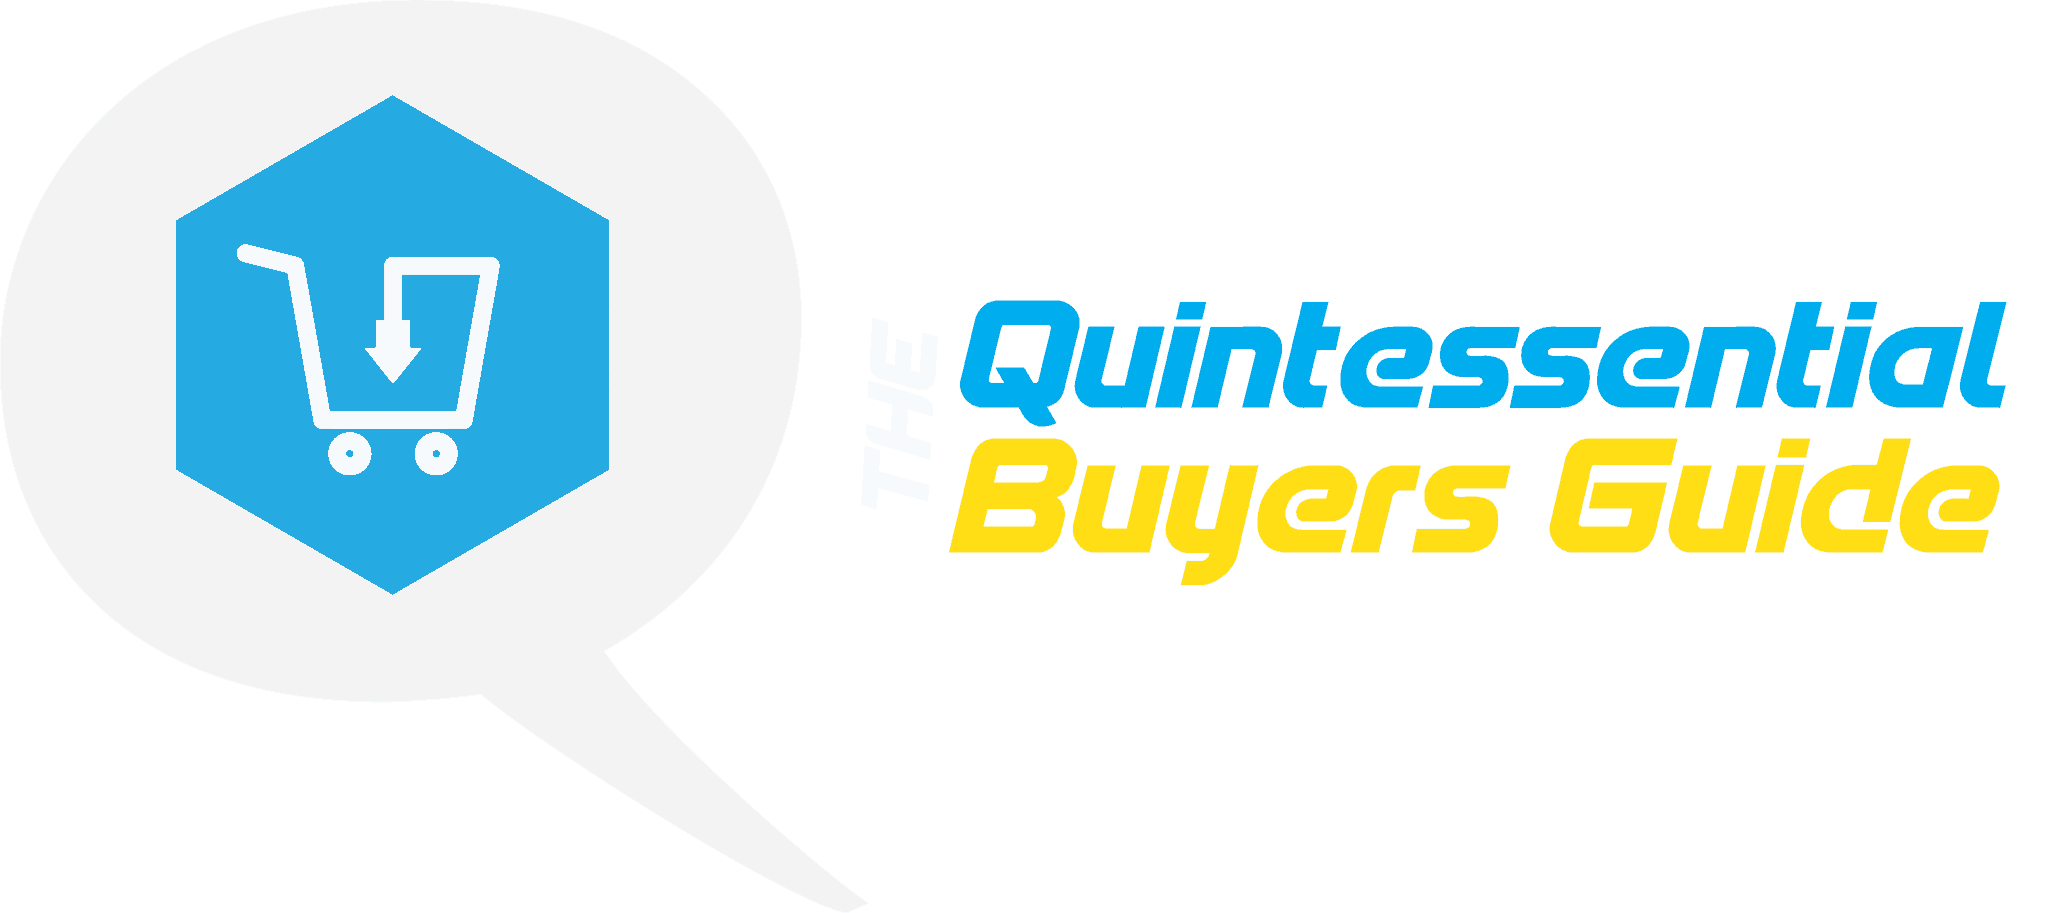 The Quintessential Buyers Guide